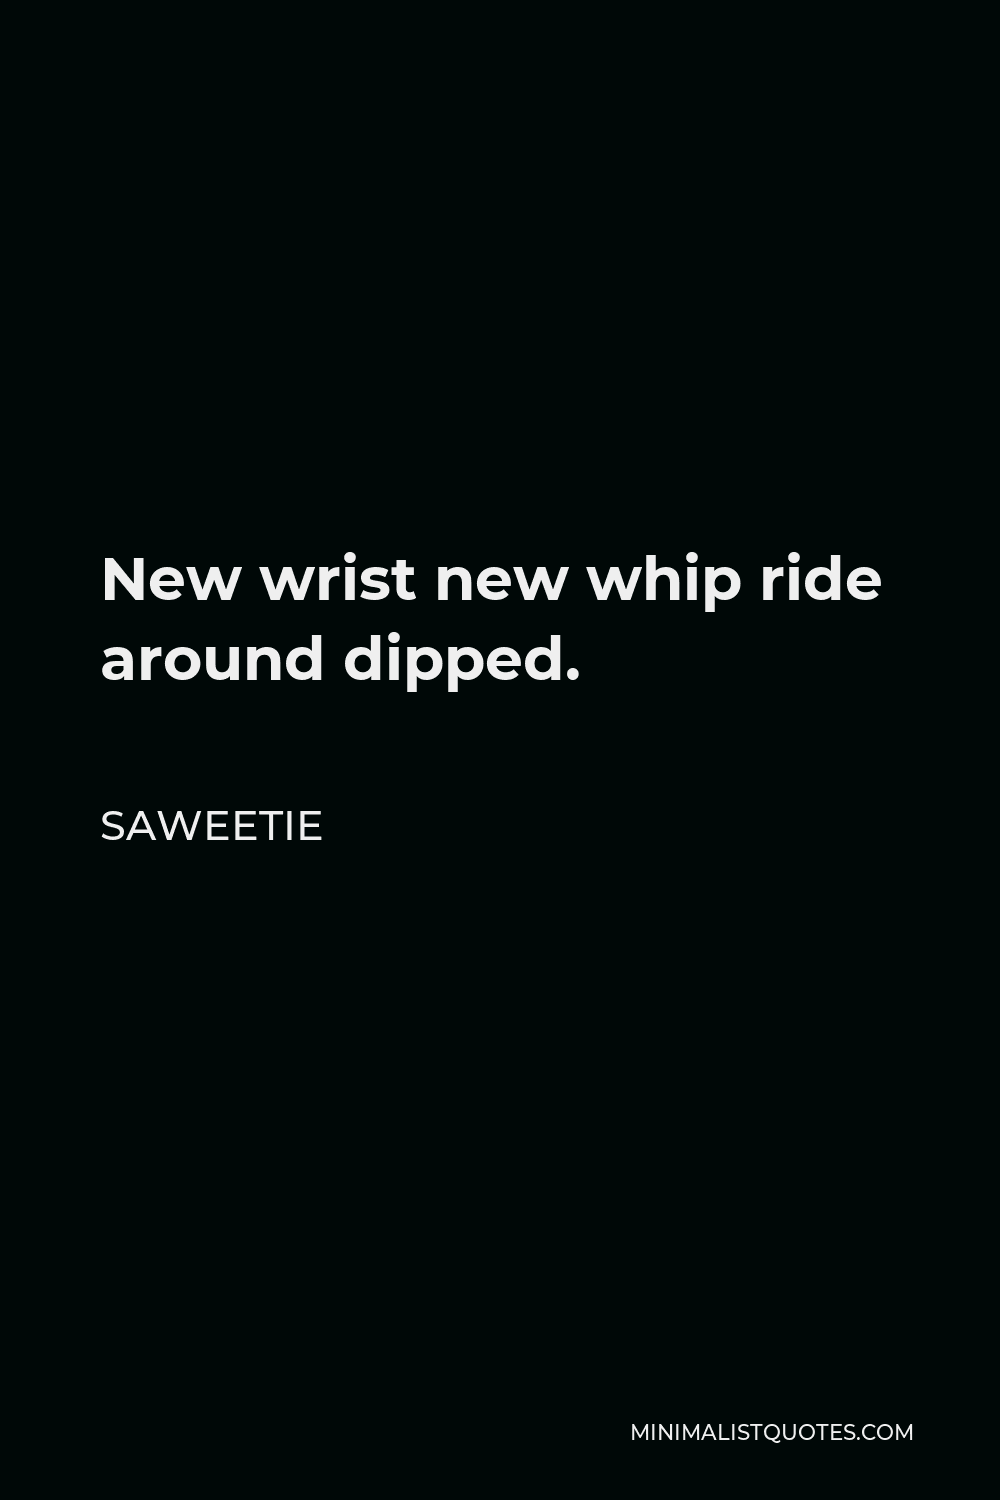 Saweetie Quote - New wrist new whip ride around dipped.